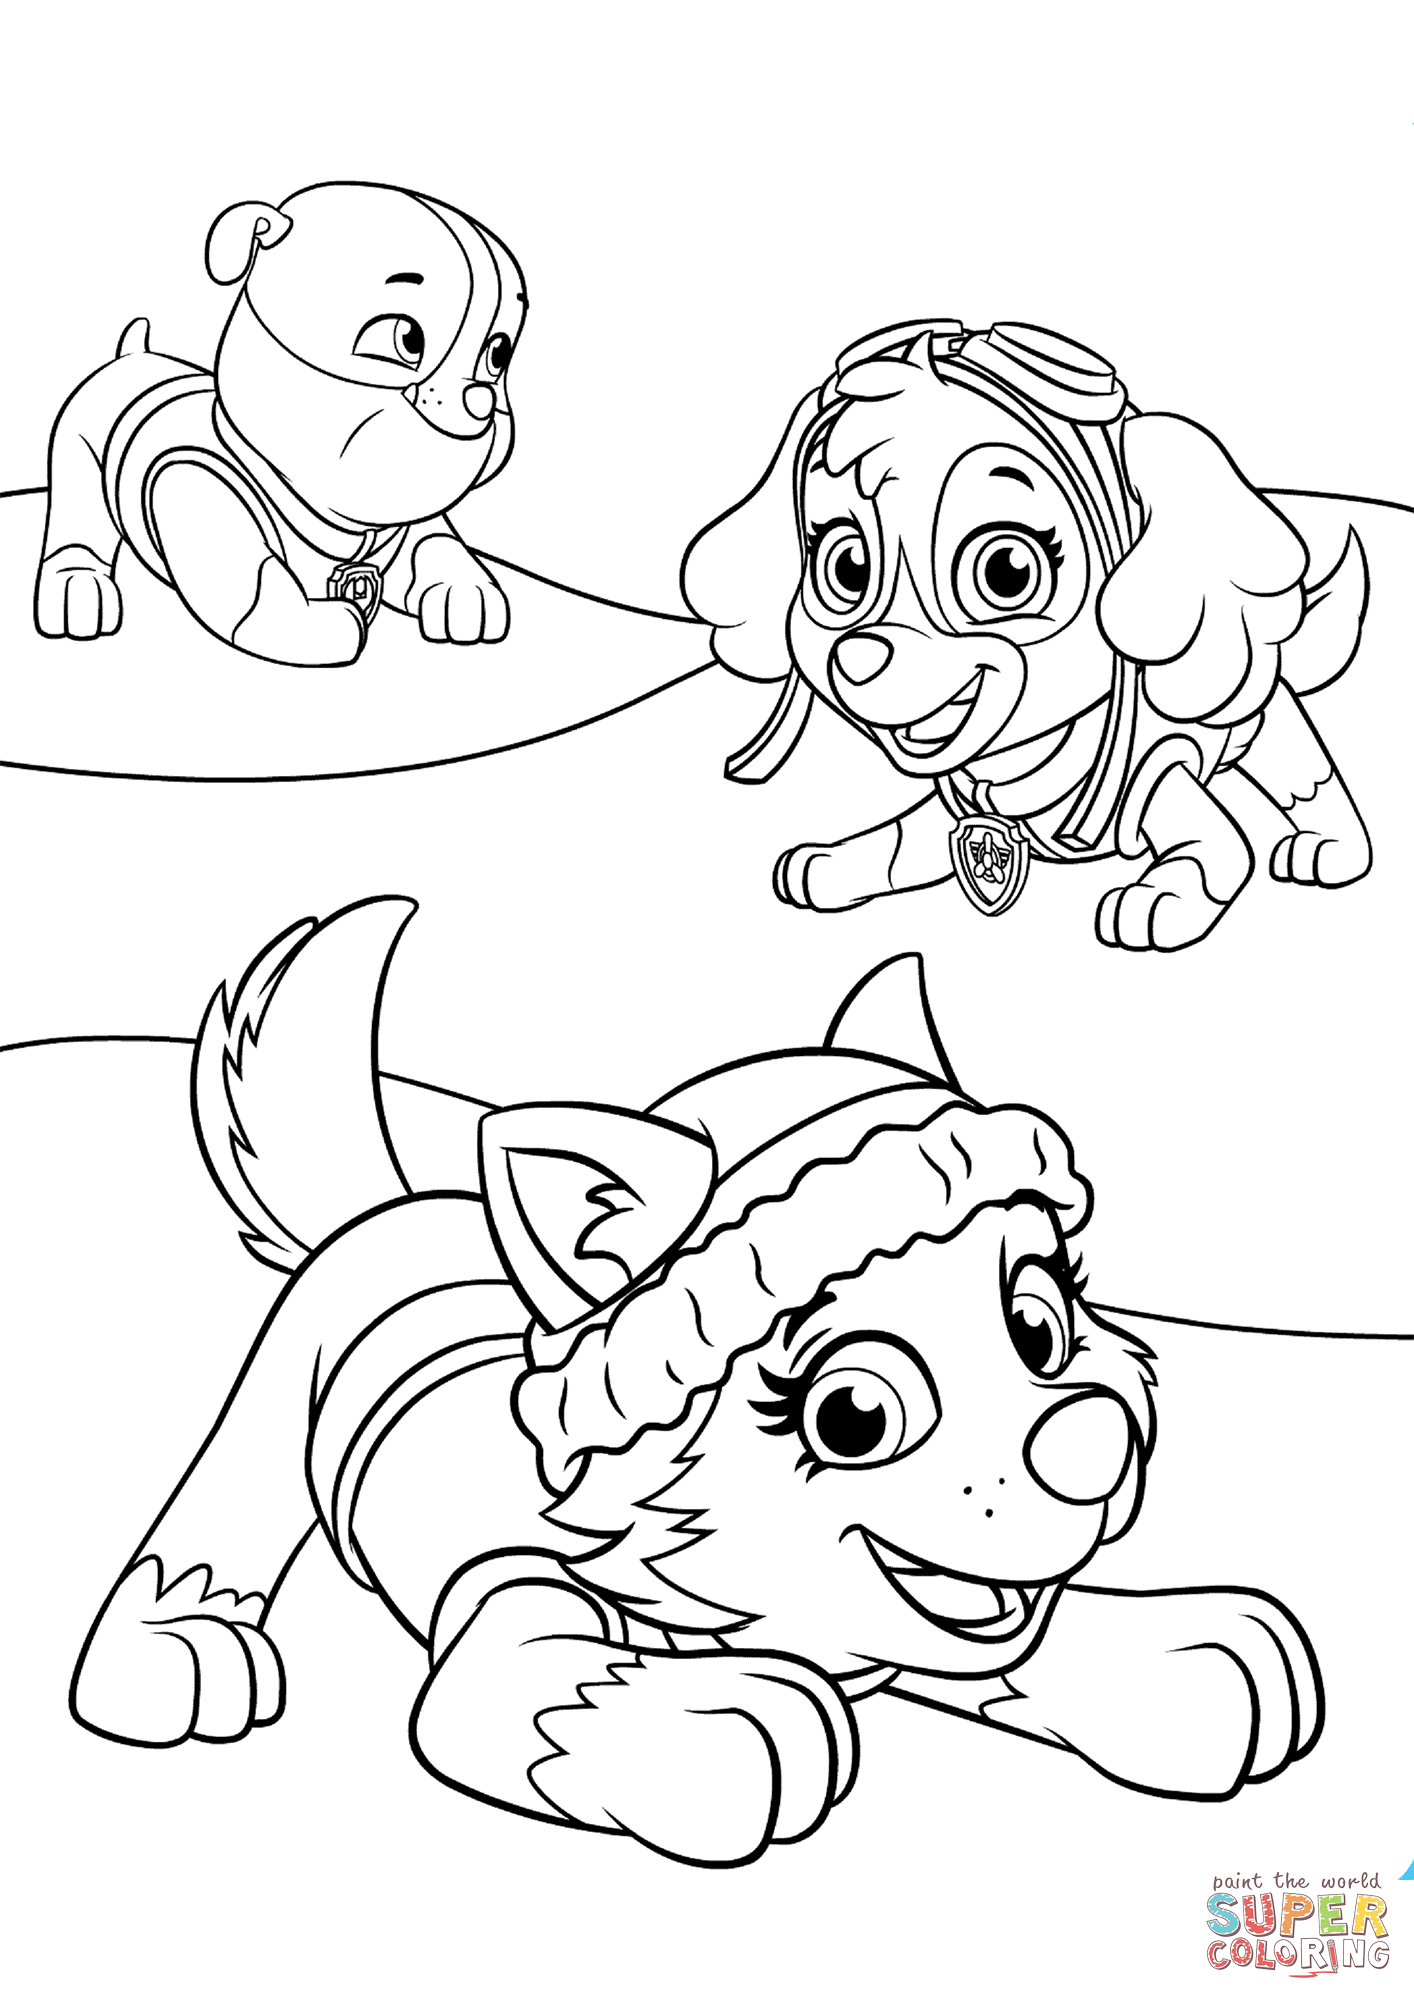 Everest Plays with Skye and Rubble coloring page | Free ...